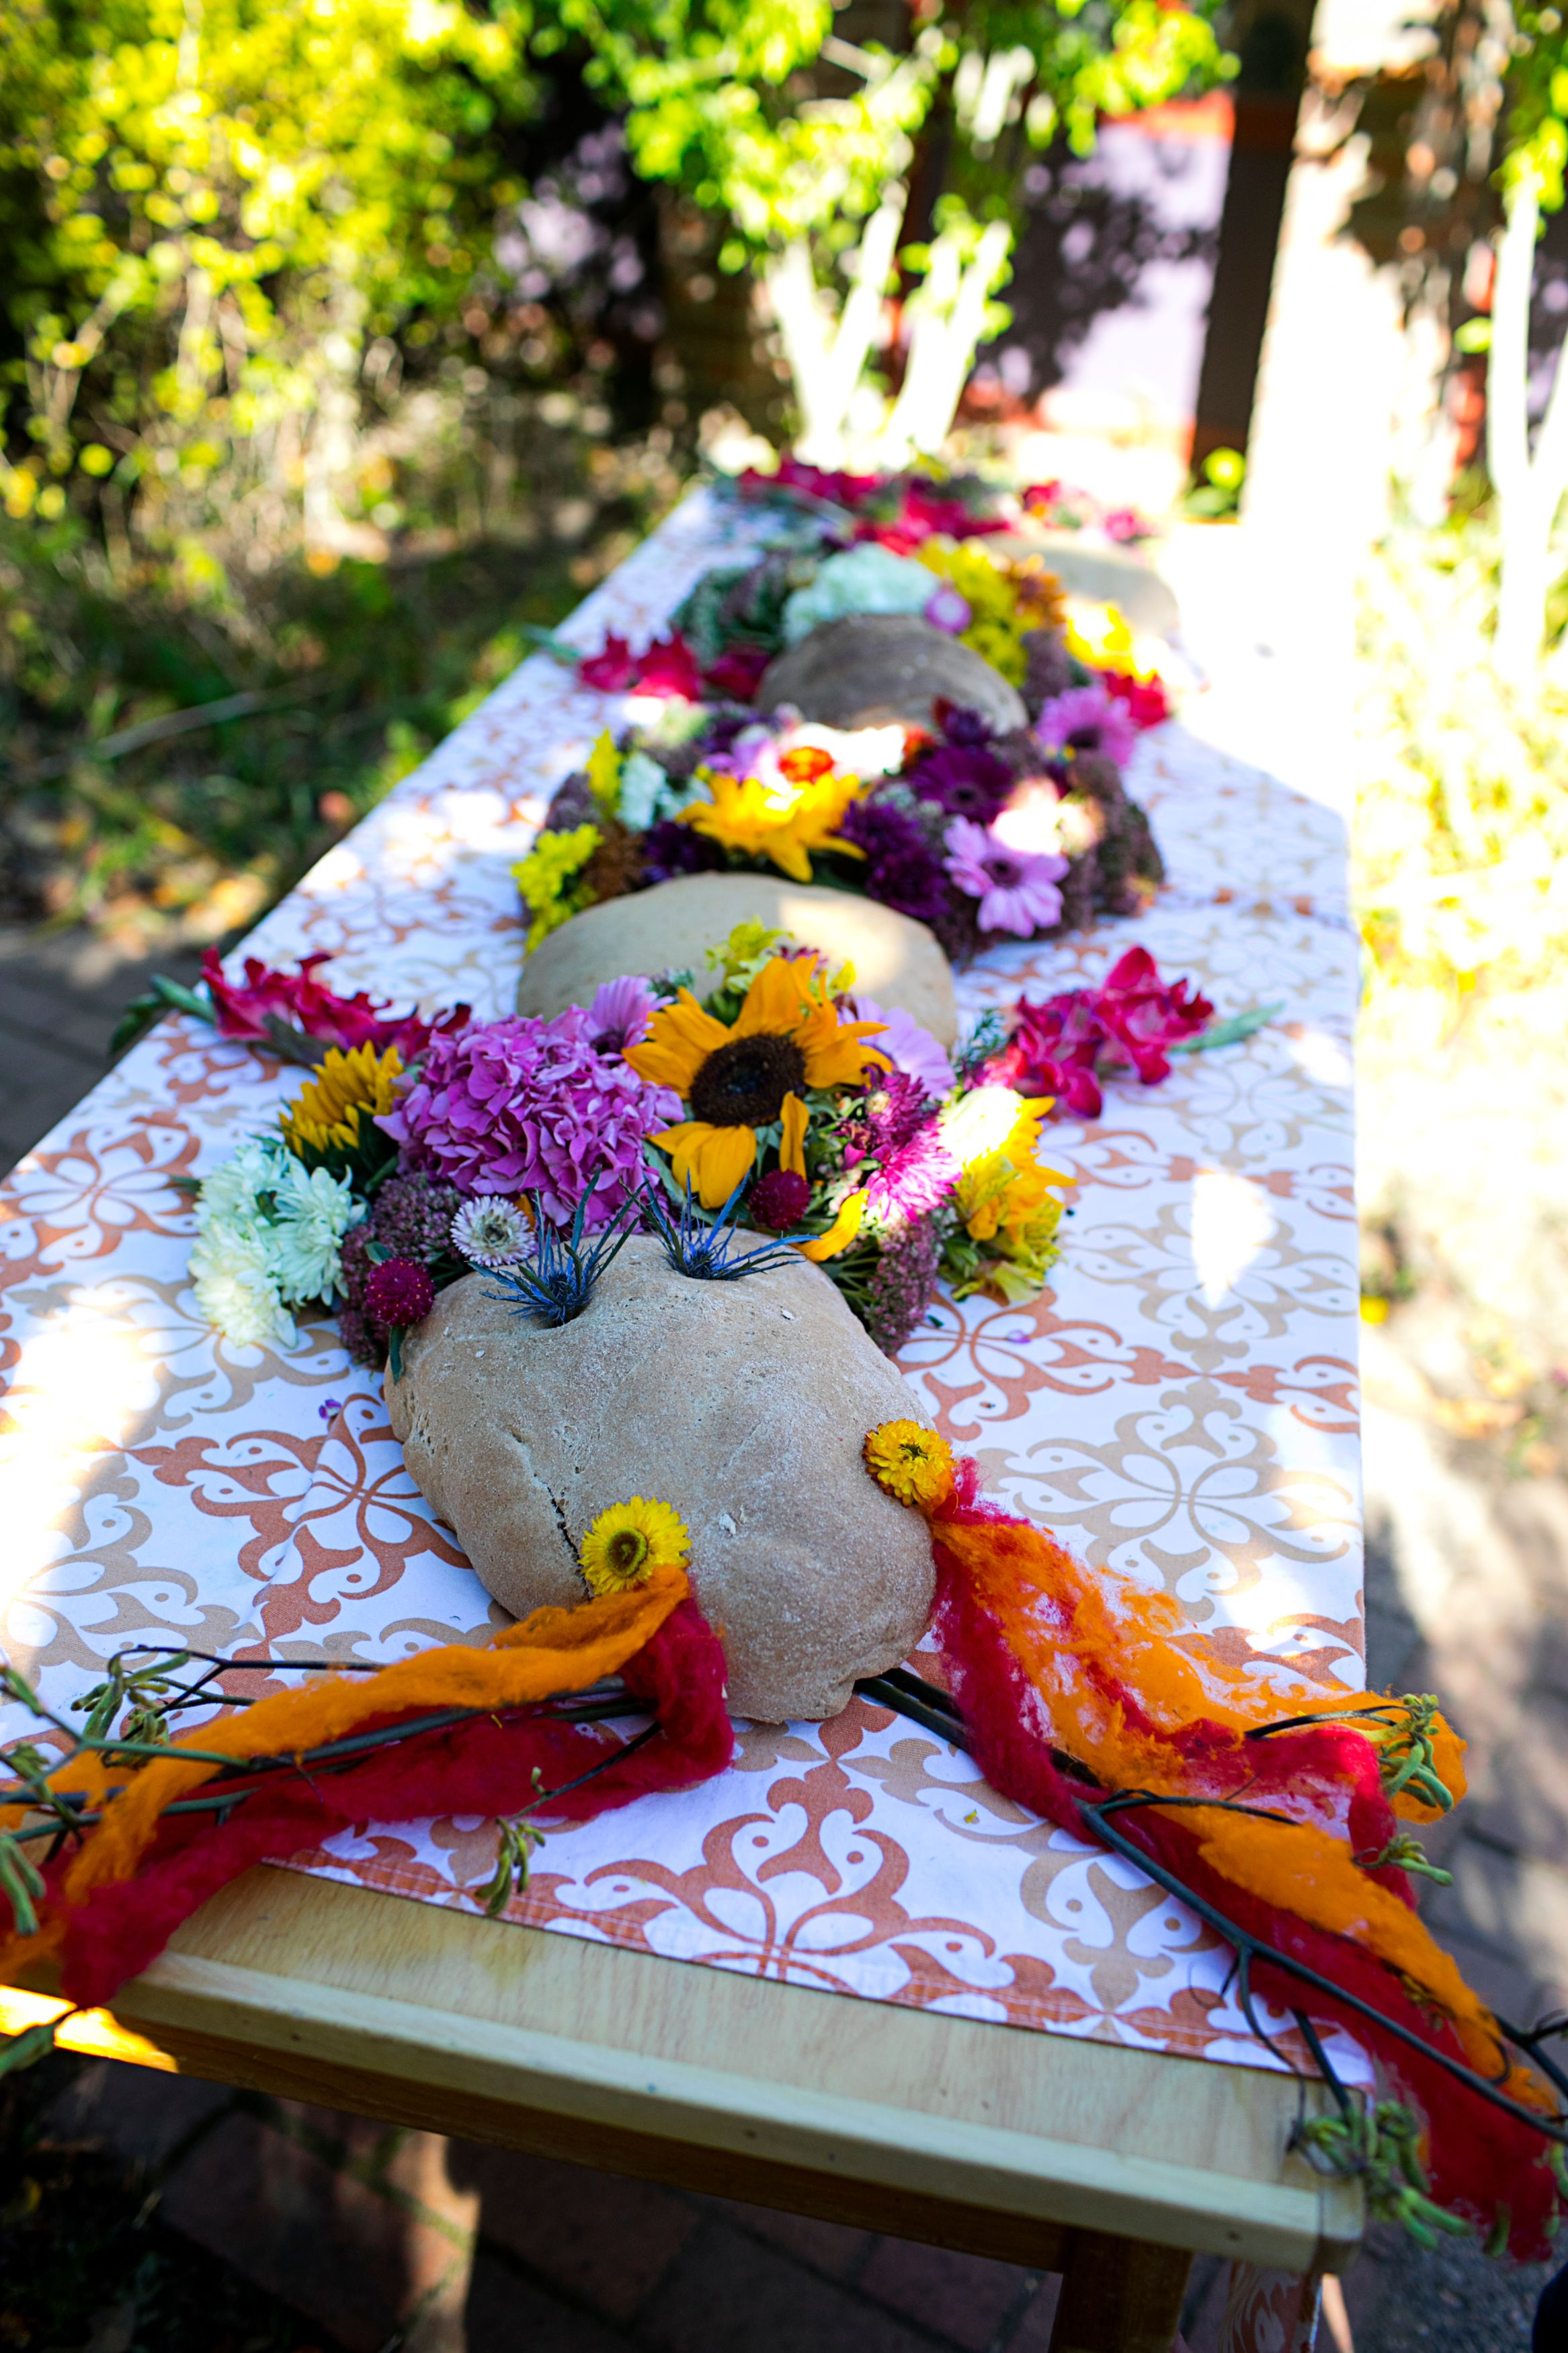 Dragon-Shaped Bread Adorned with Flowers